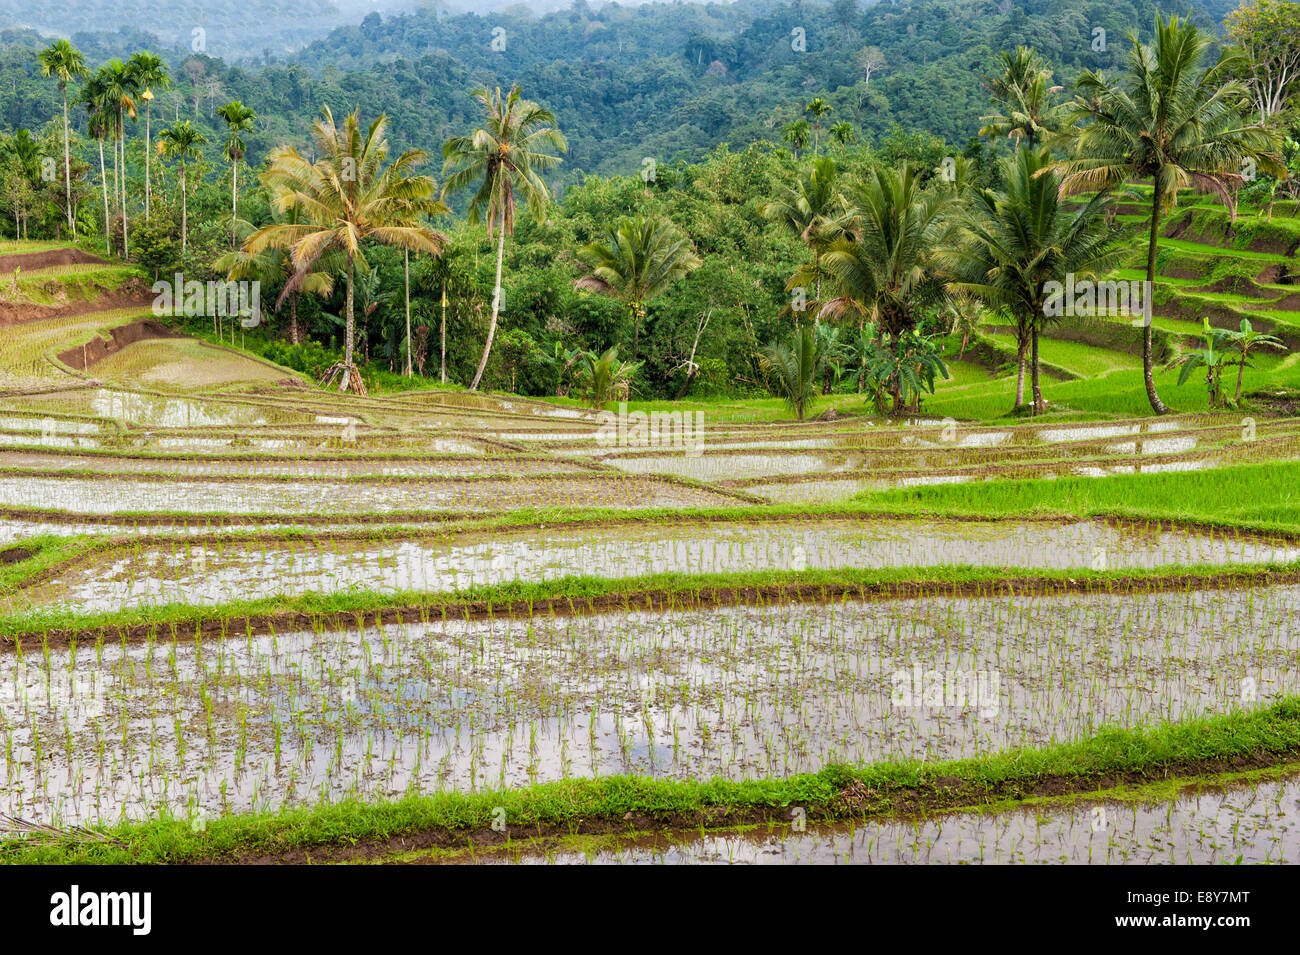 Rice terraces on the slope of the Kawah Ijen (Ijen crater), Banyuwangi, East Java, Indonesia, Asia - Stock Image